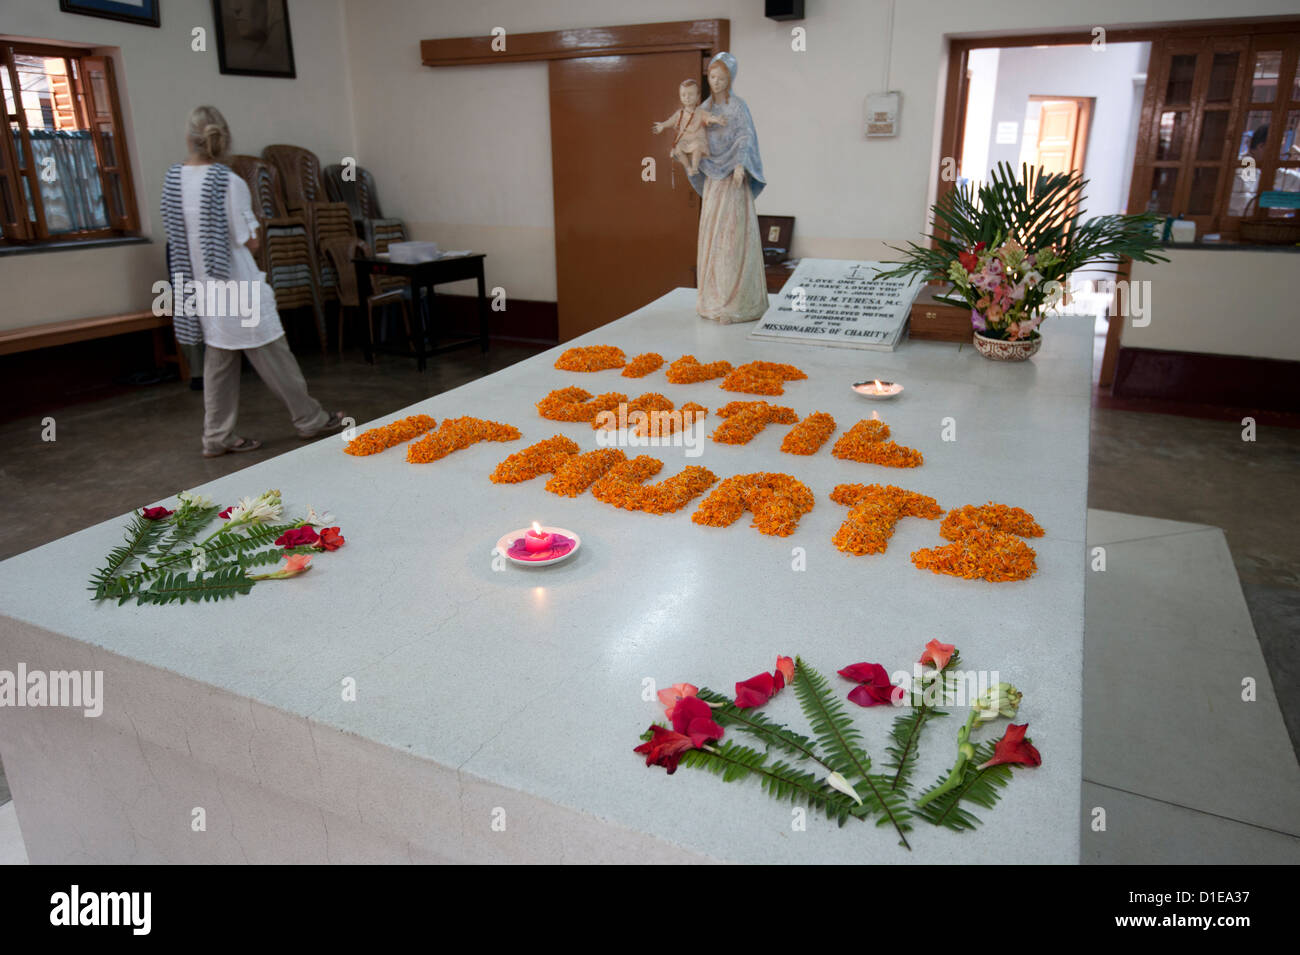 The day's selected thought spelled out in marigolds on the tomb of Mother Theresa, Kolkata, West Bengal, India, - Stock Image